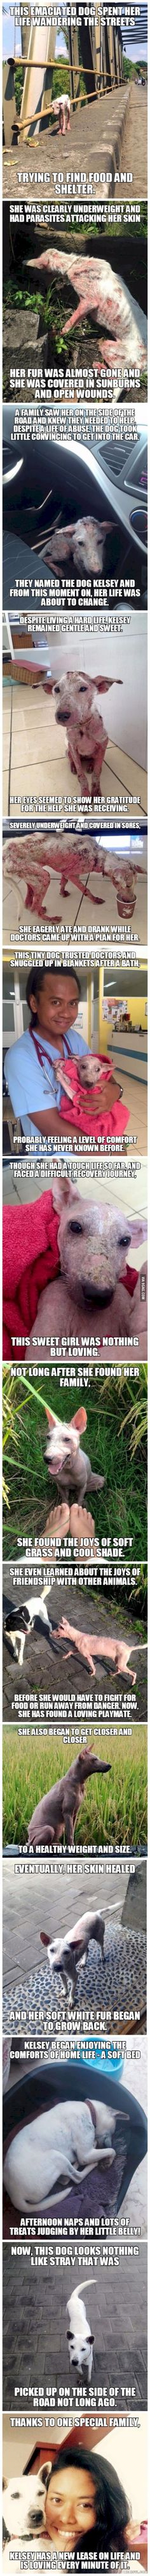 A story of a stray dog... -faith in humanity restored. So sweet